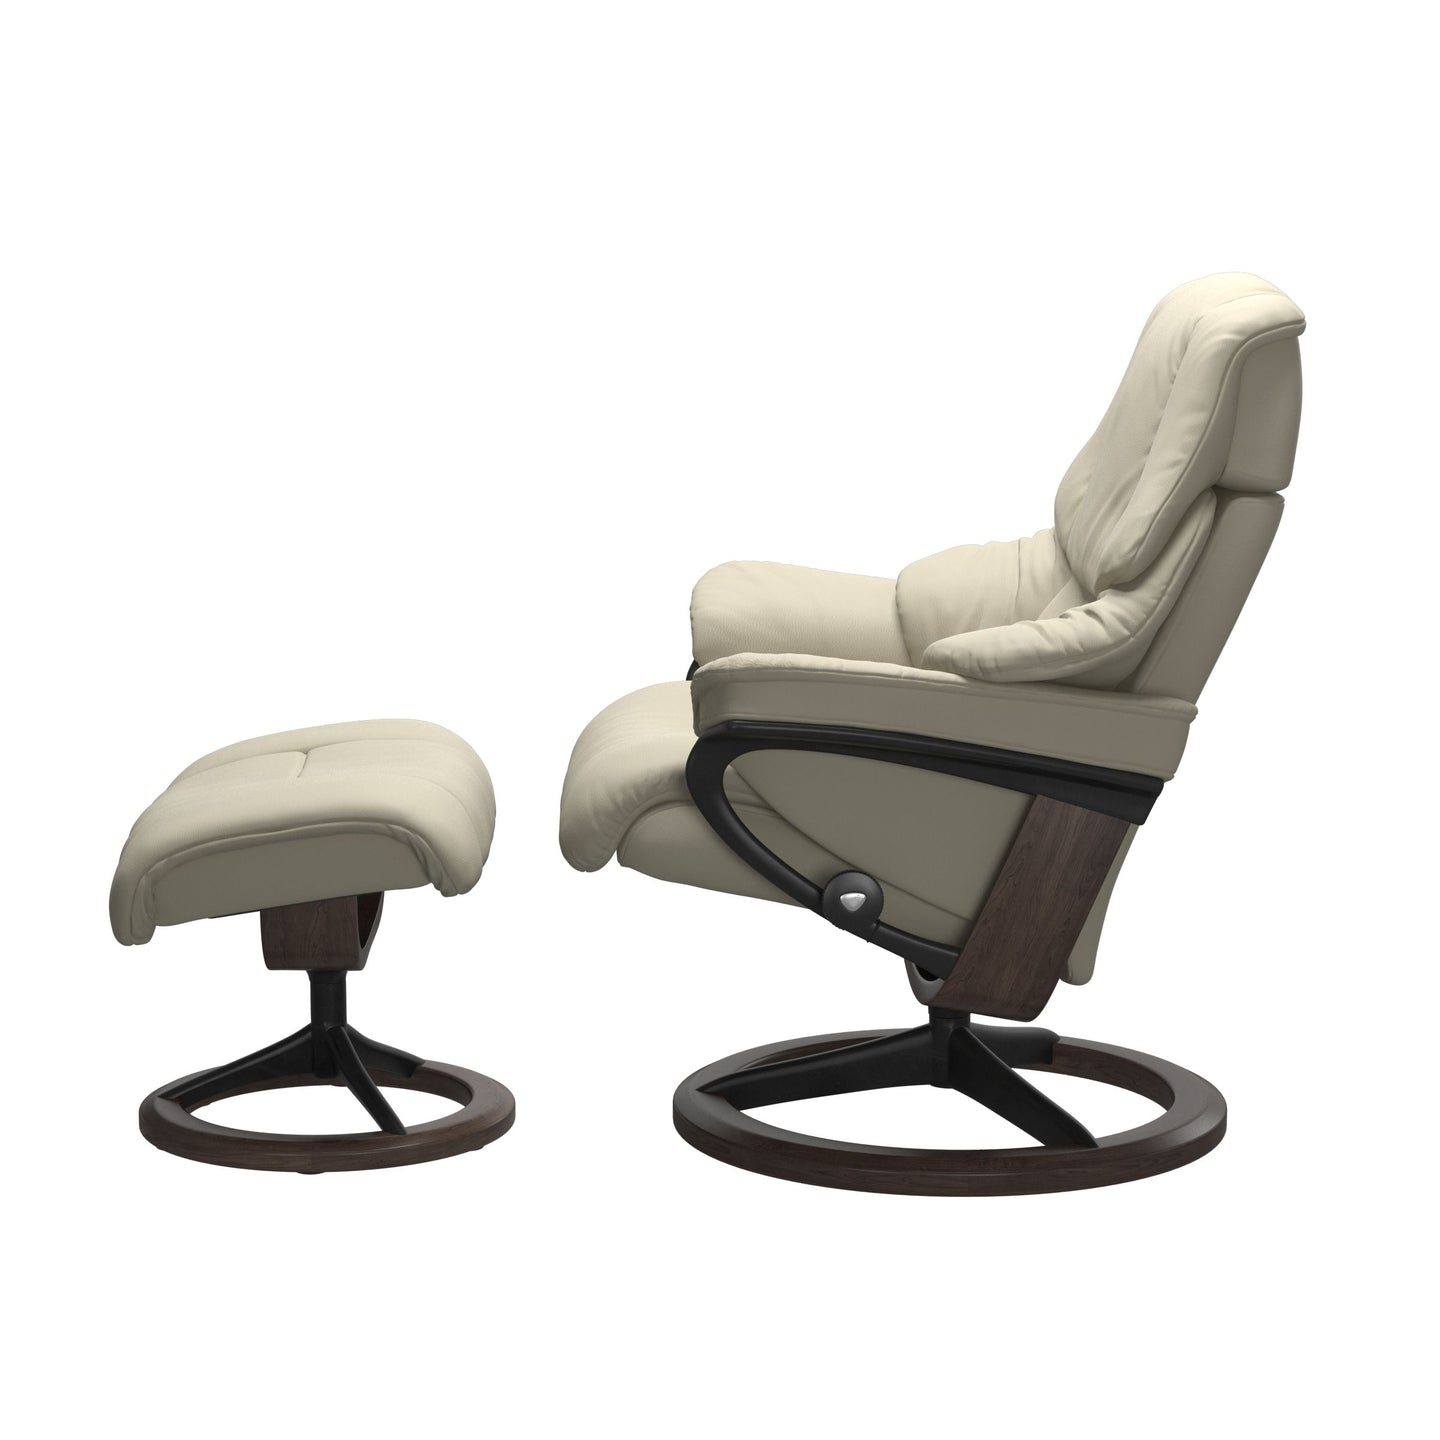 Stressless® Reno (L) Signature chair with footstool